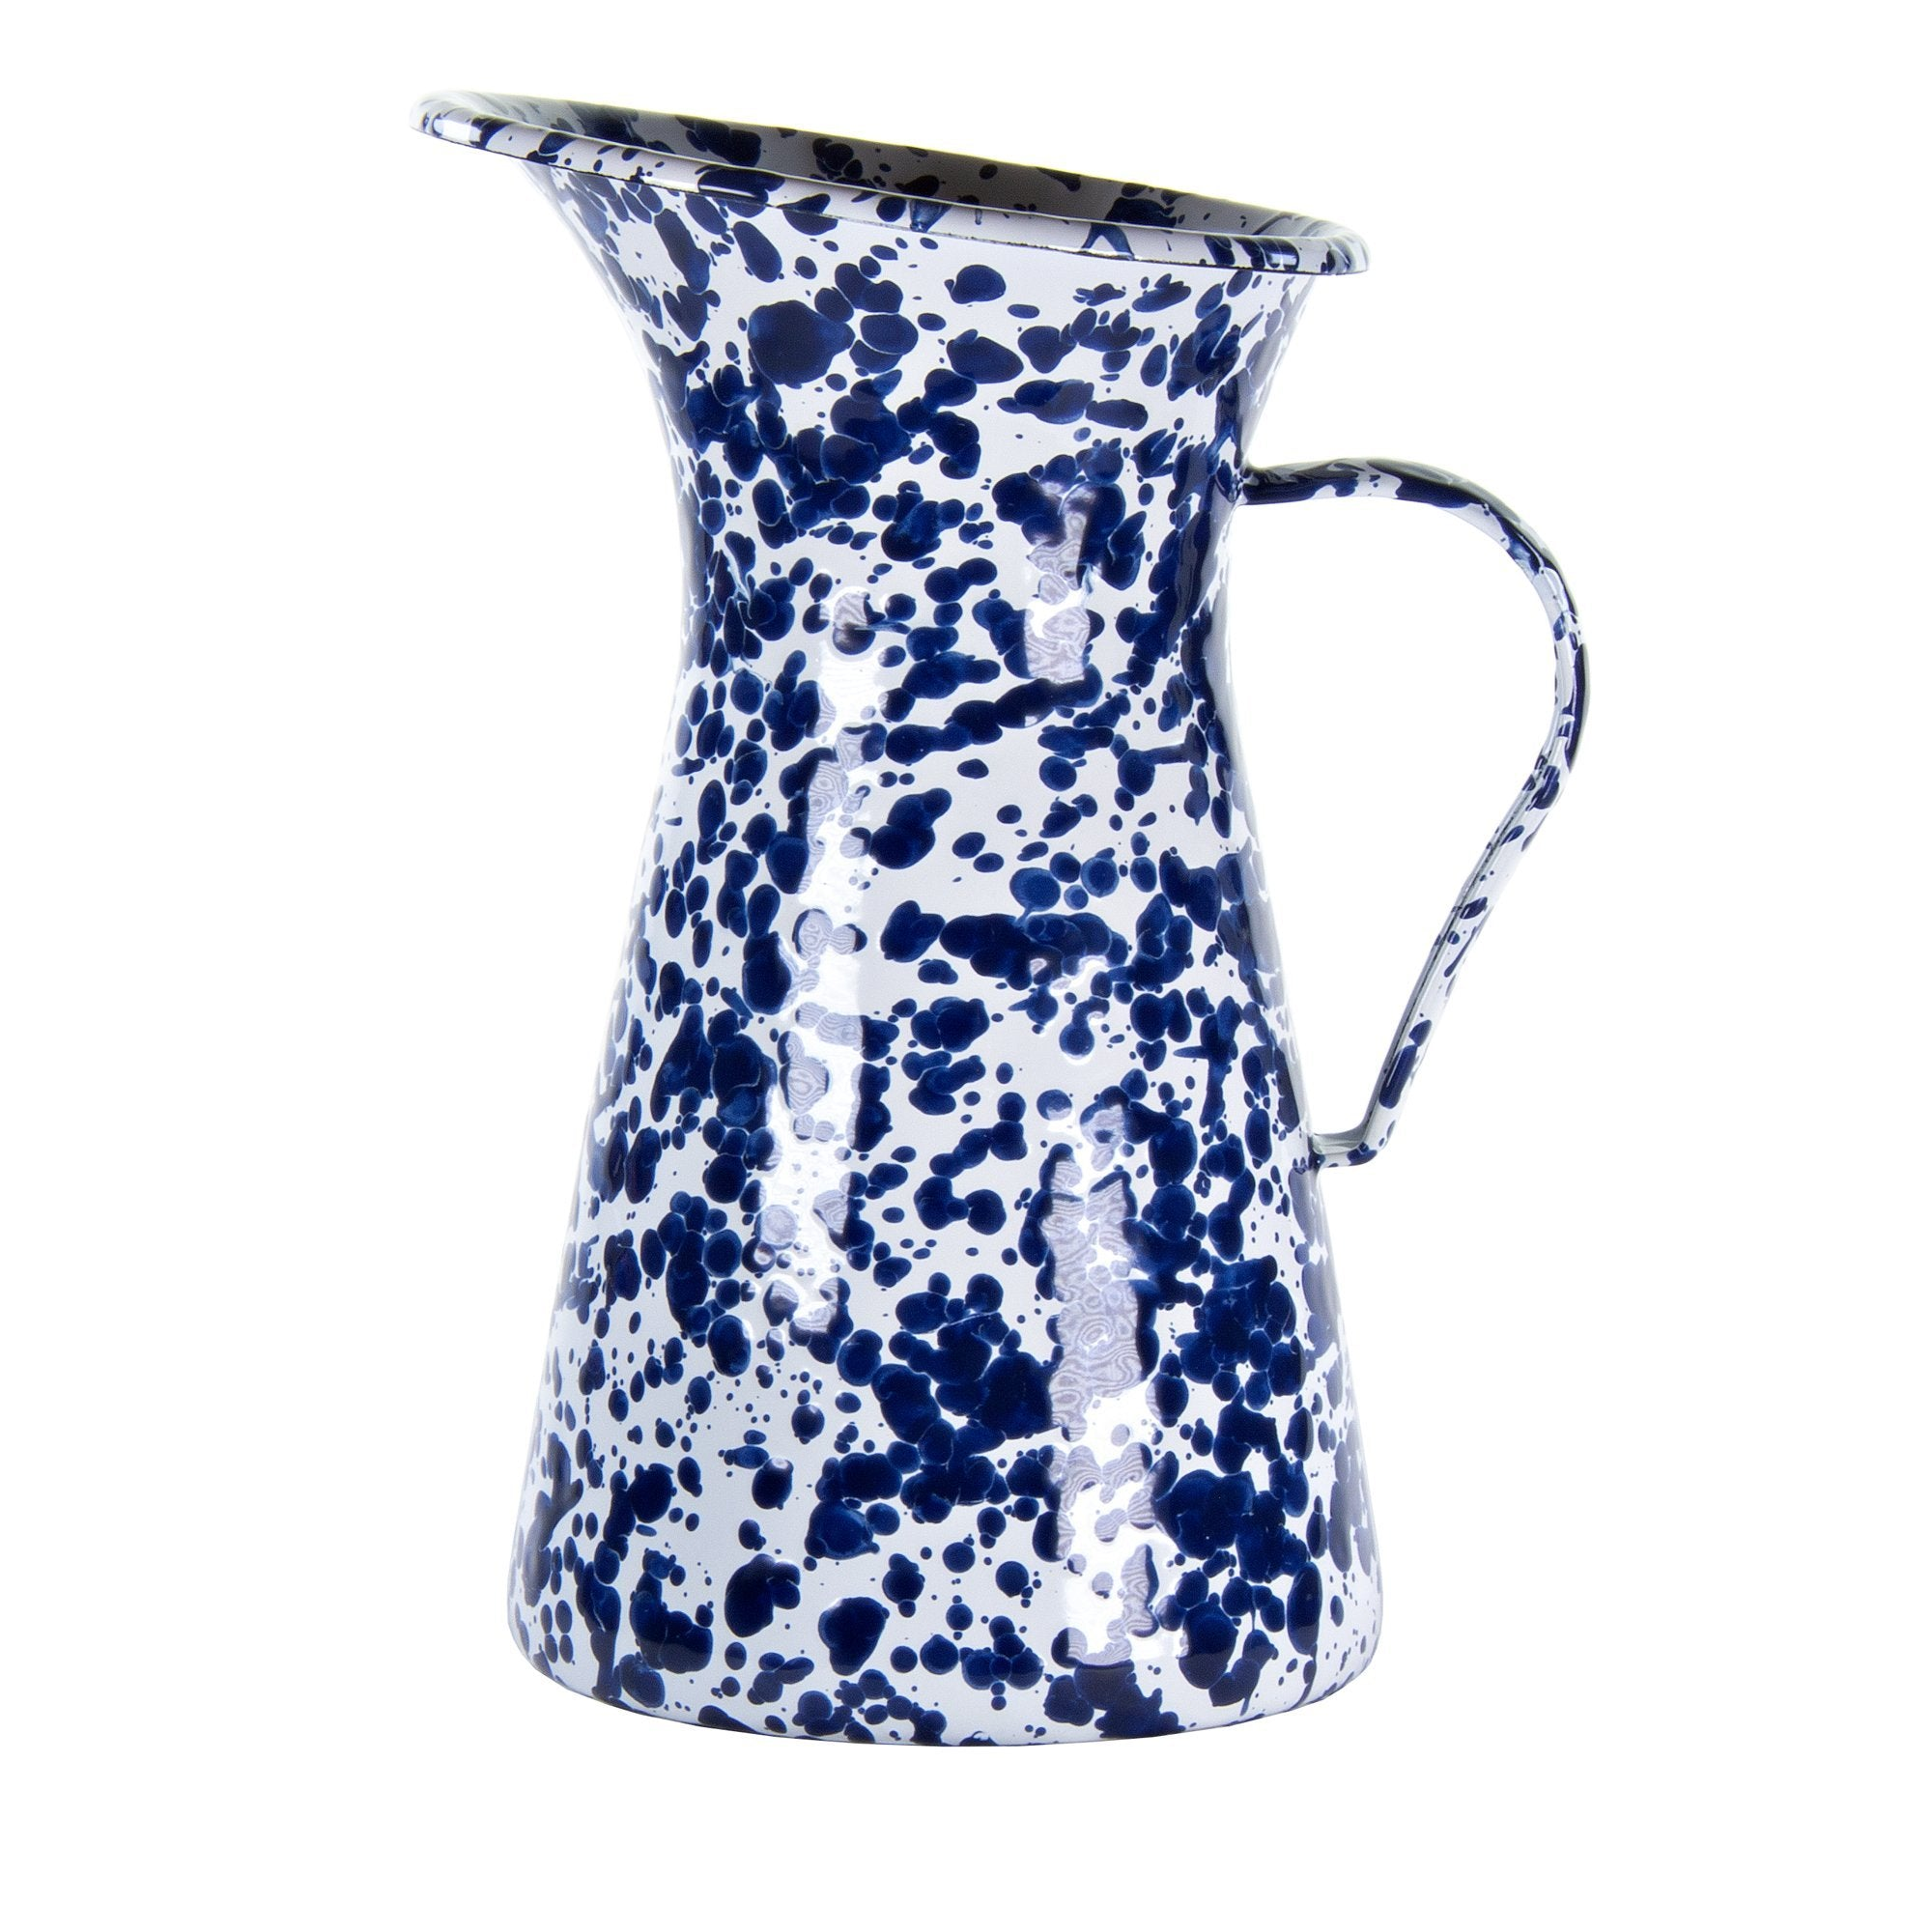 CB63 - Cobalt Blue Swirl - Enamelware- Large Pitcher by Golden Rabbit